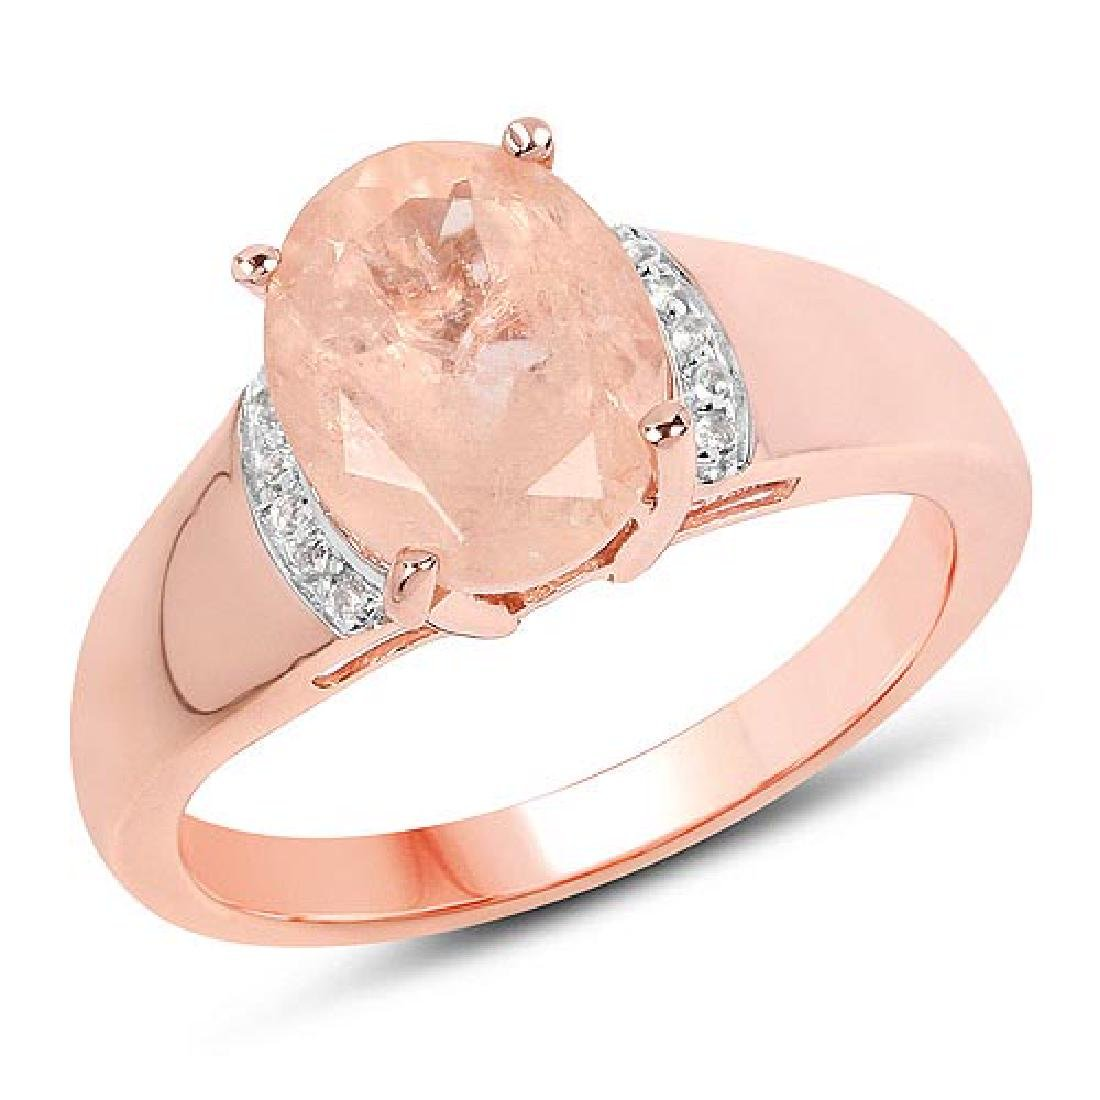 14K Rose Gold Plated 2.60 CTW Genuine Morganite and Whi